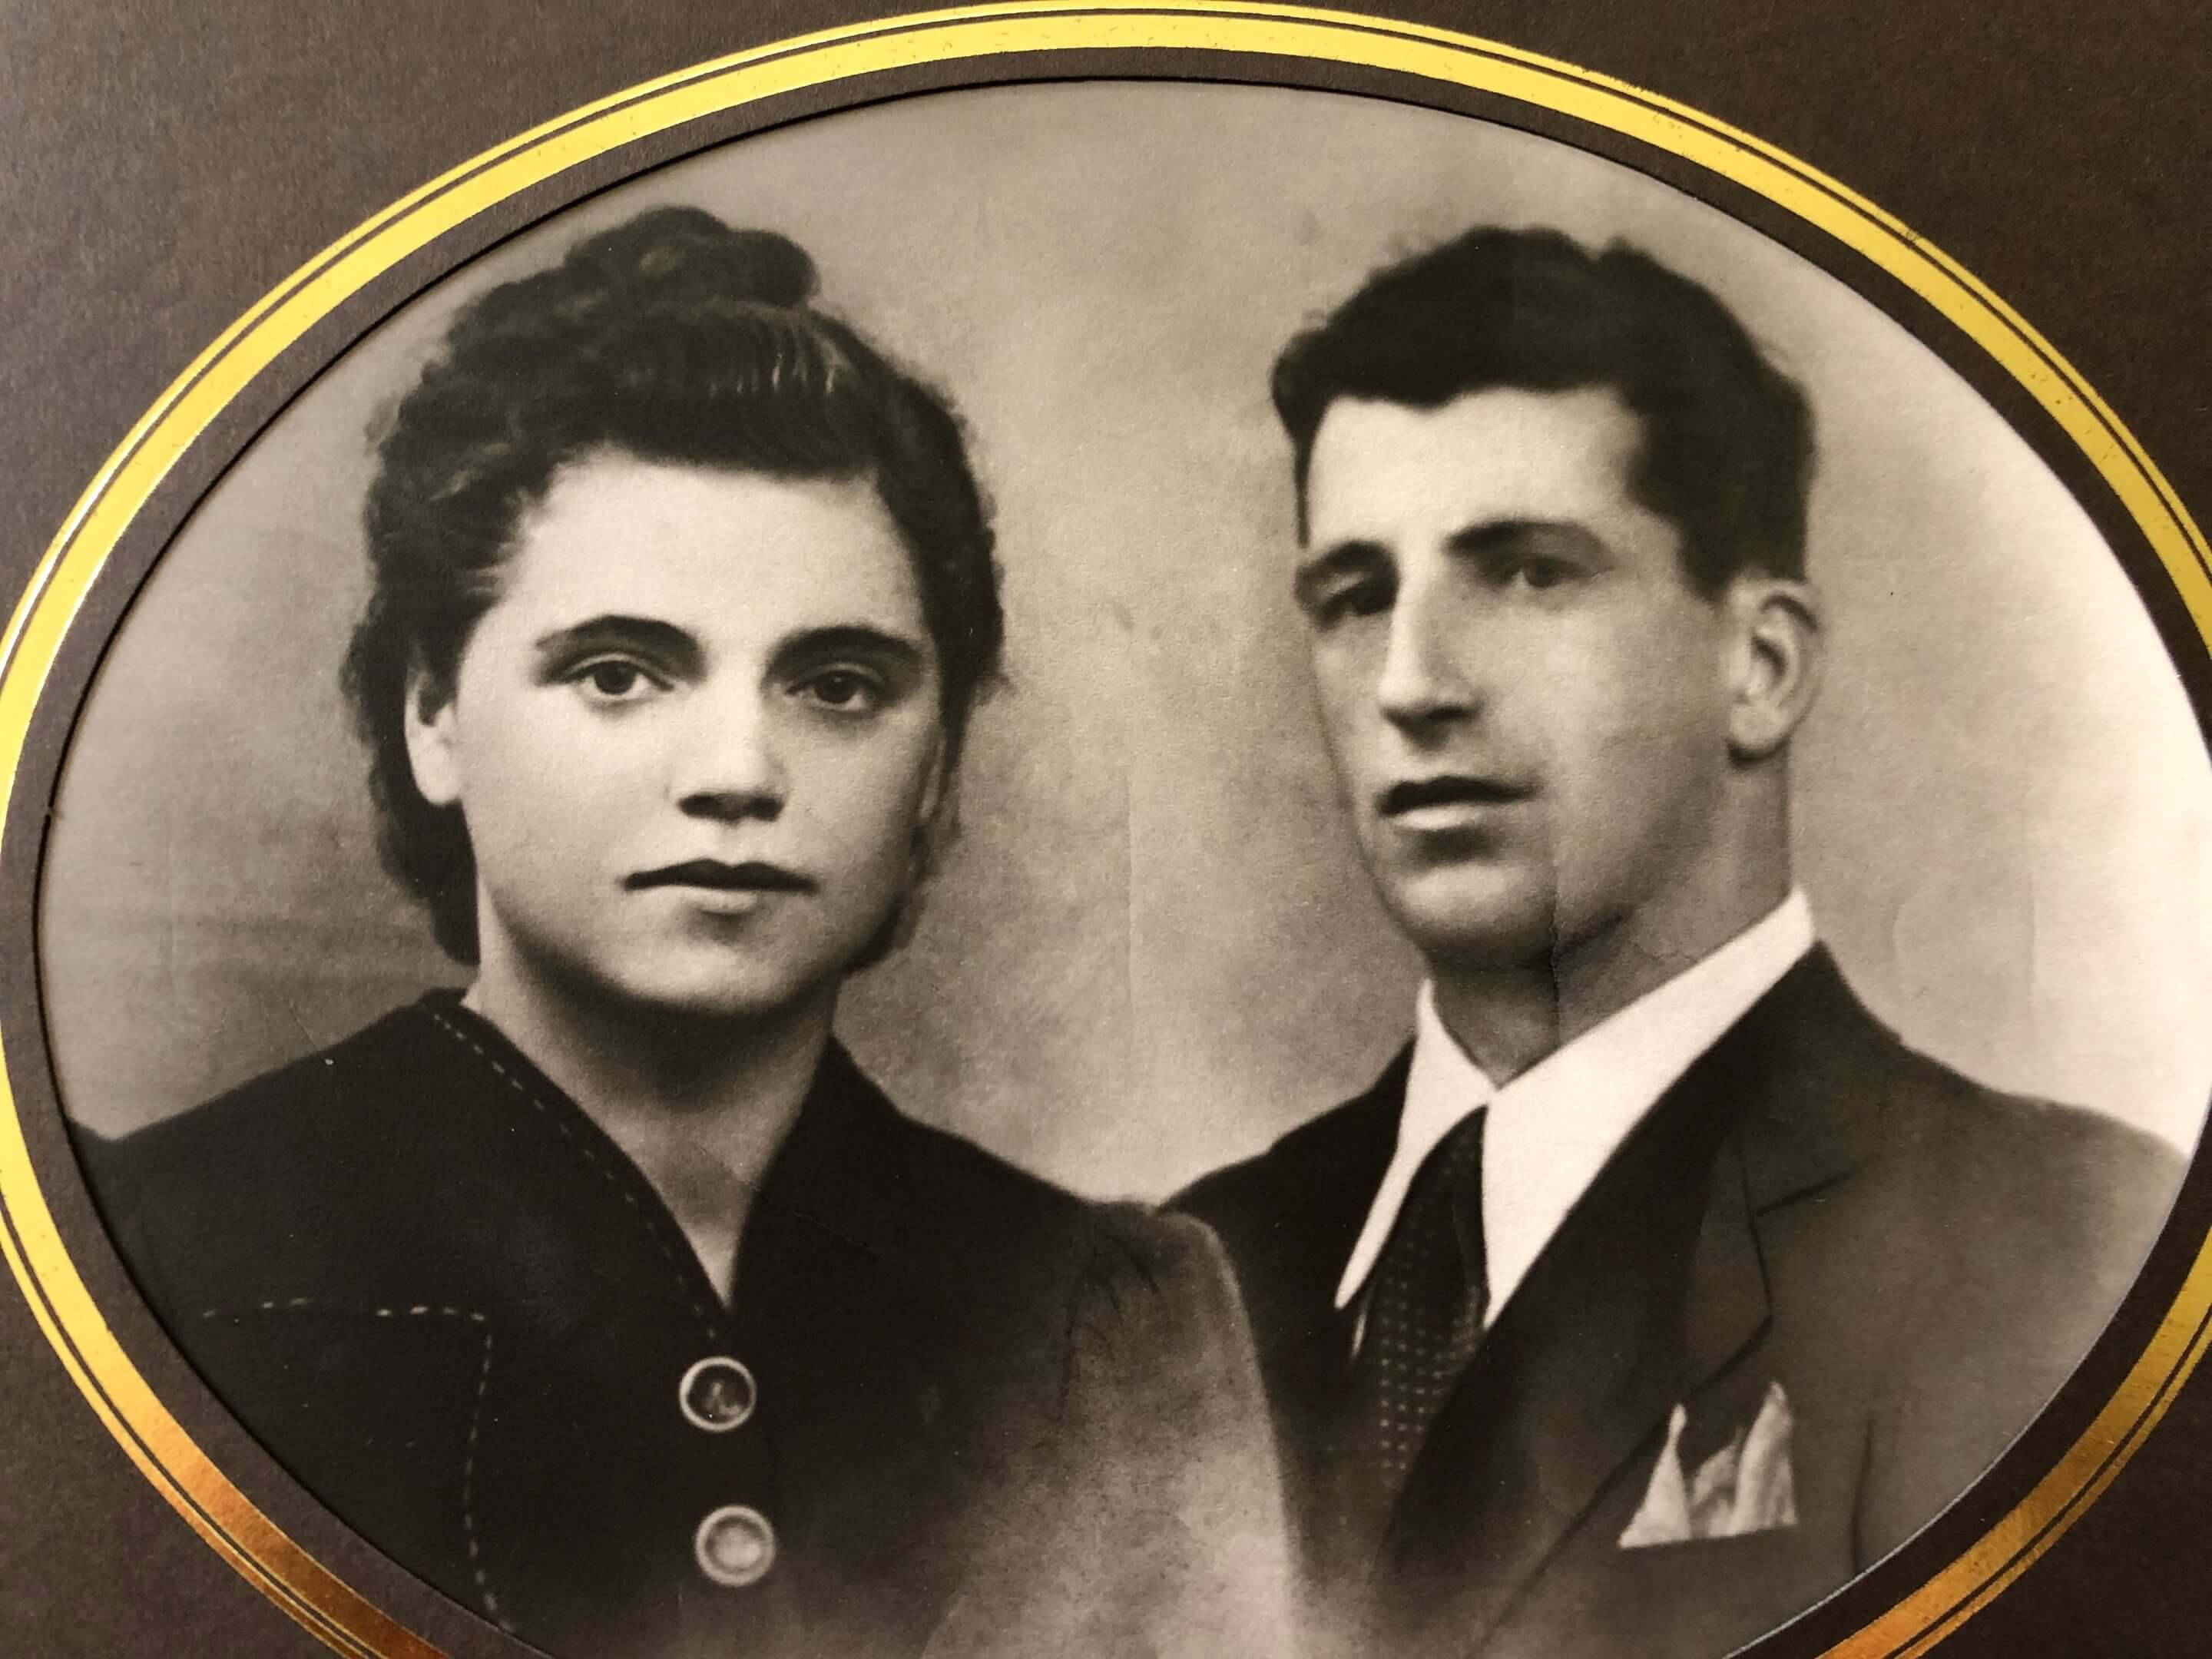 Old fashion black and white photo of an Italian couple